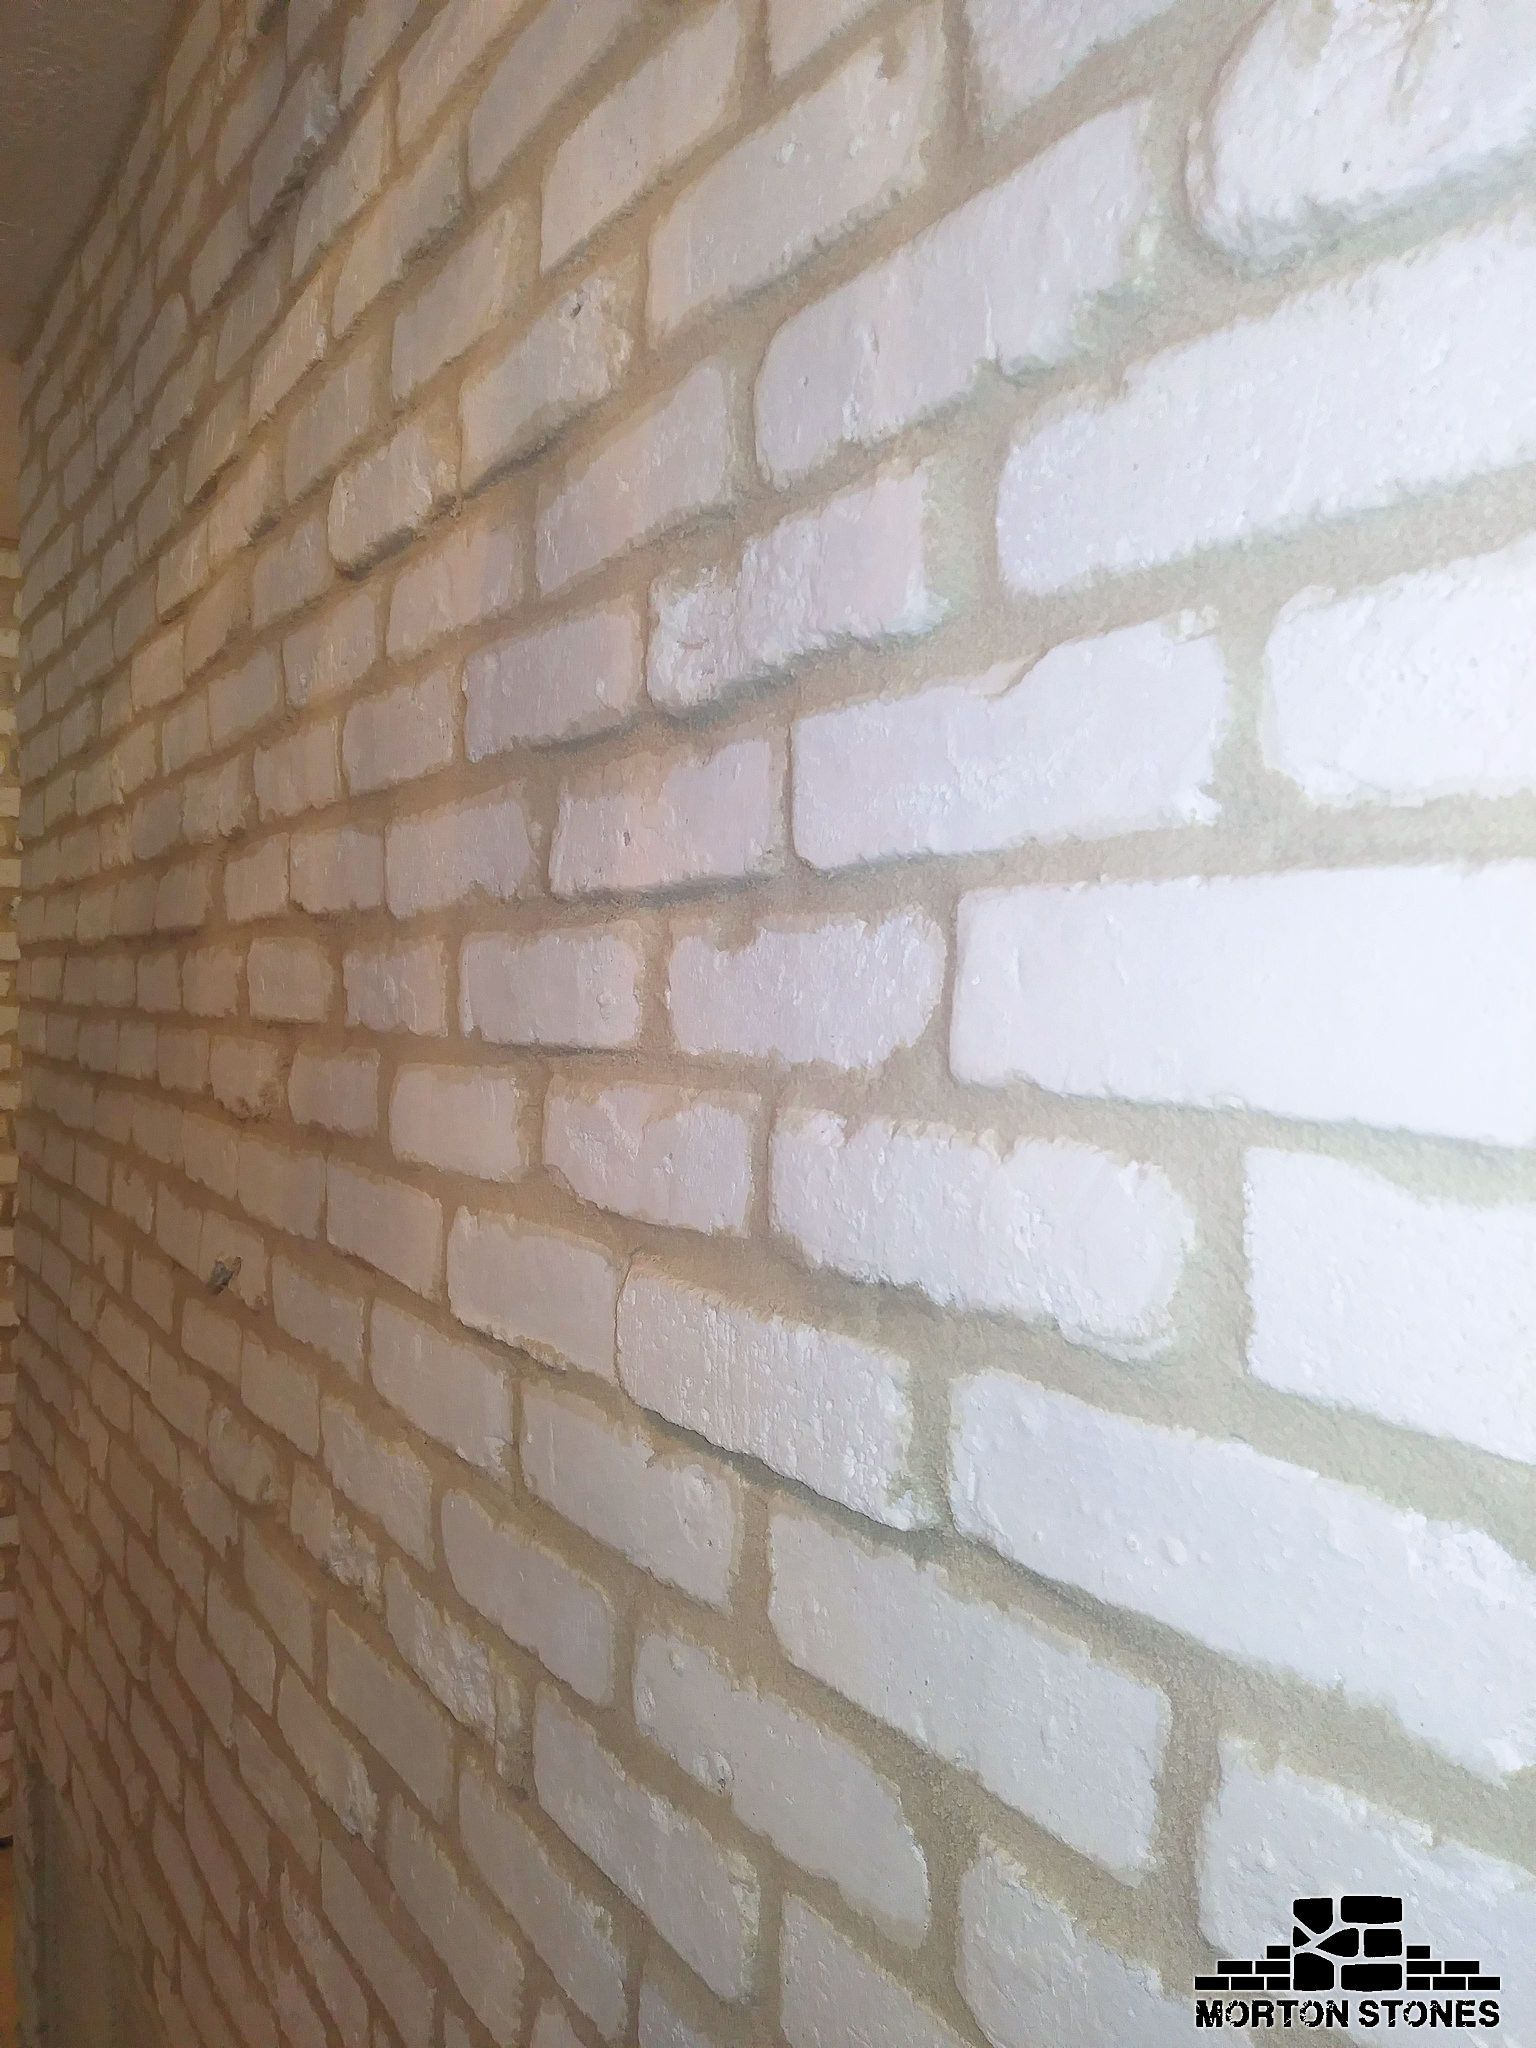 The White Brick Wall Looks Great And It S A Timeless Accent Feature Mortonstones Brick Tiles Rustic Thinbrick Brick Veneer White Brick Walls Brick Face